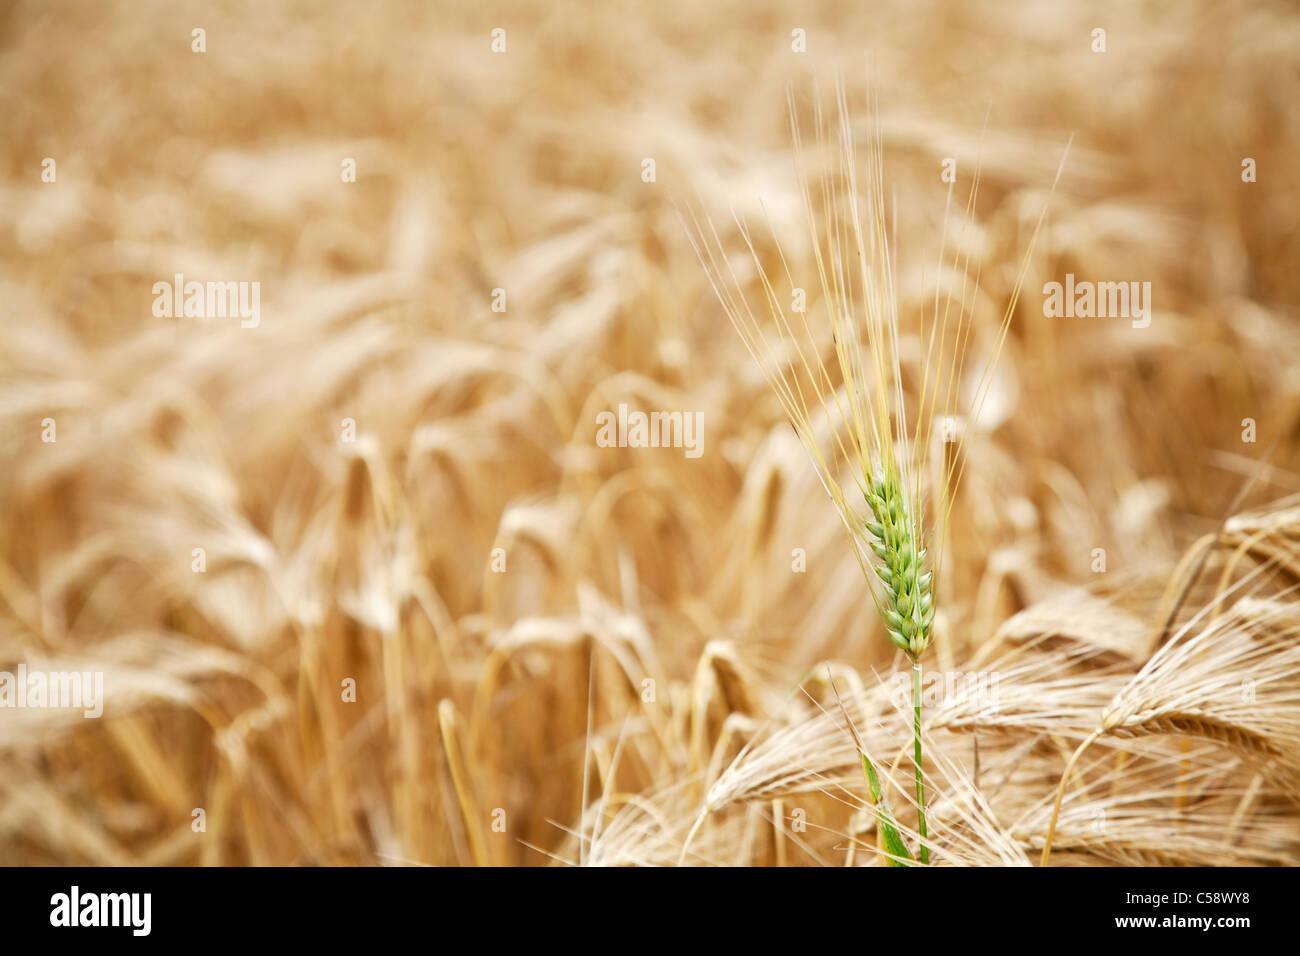 Green wheat stalk in the yellow wheat field. - Stock Image